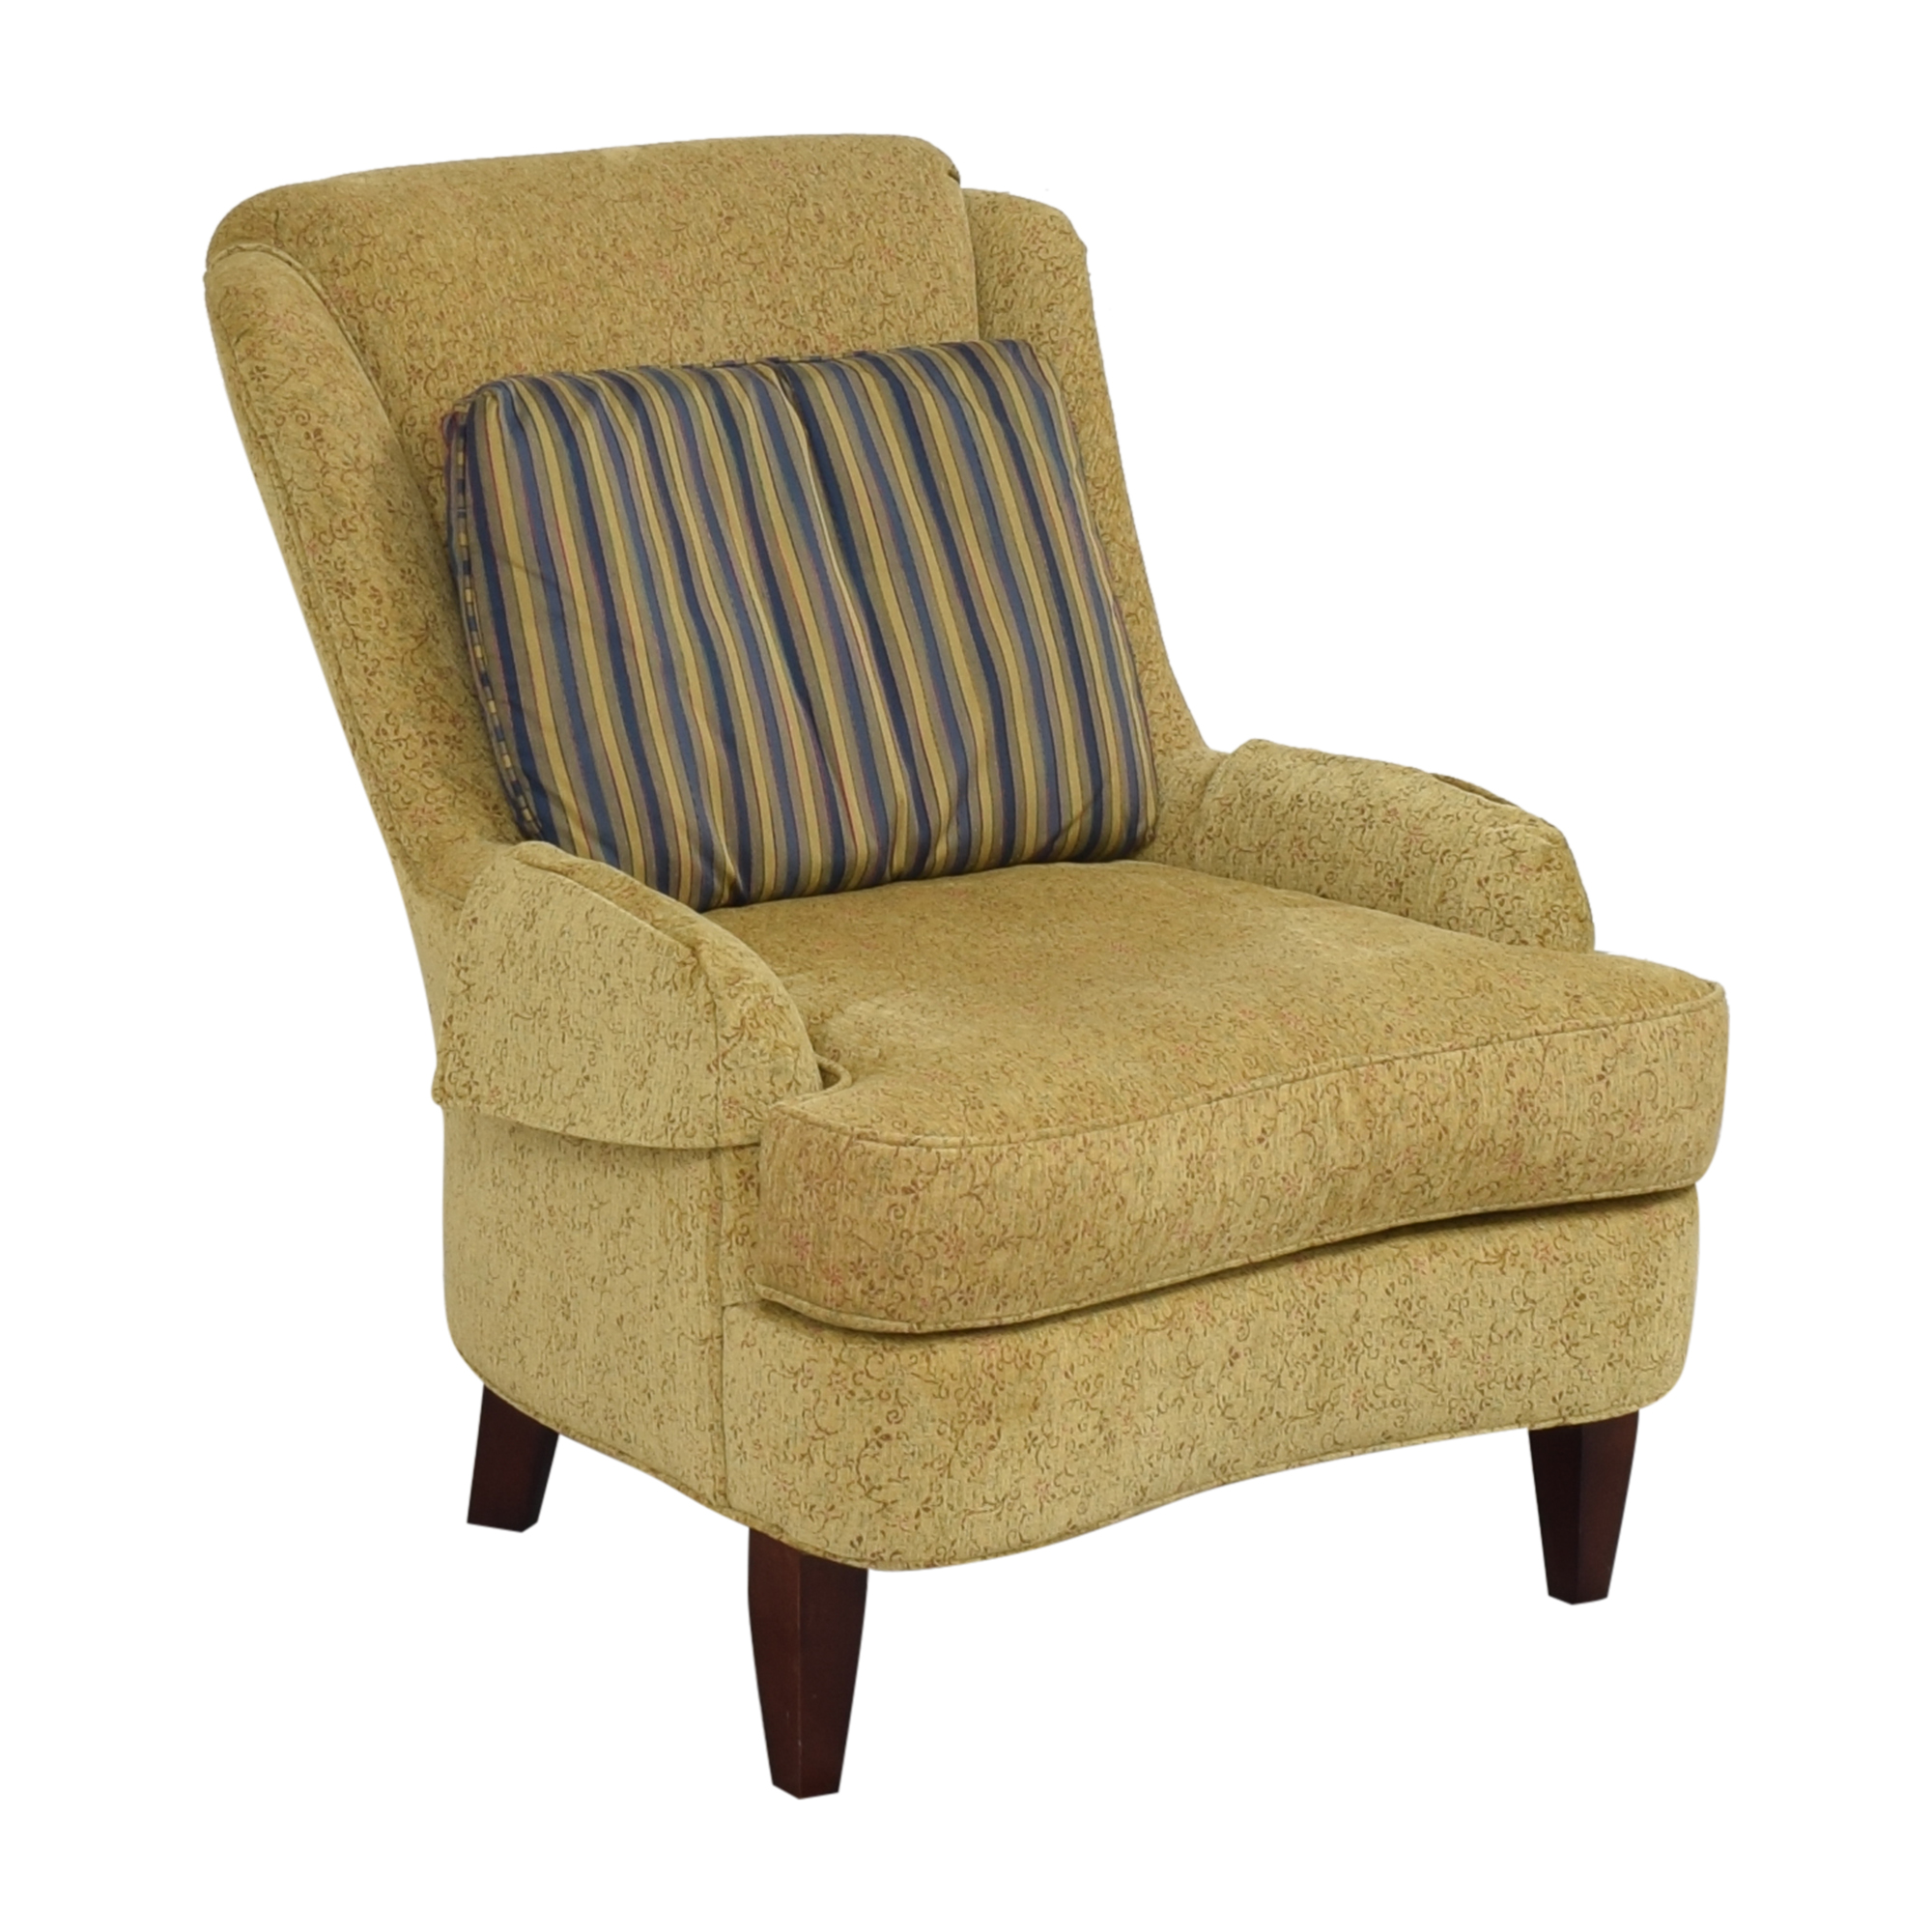 Beacon Hill Collection Beacon Hill Collection Accent Chair for sale